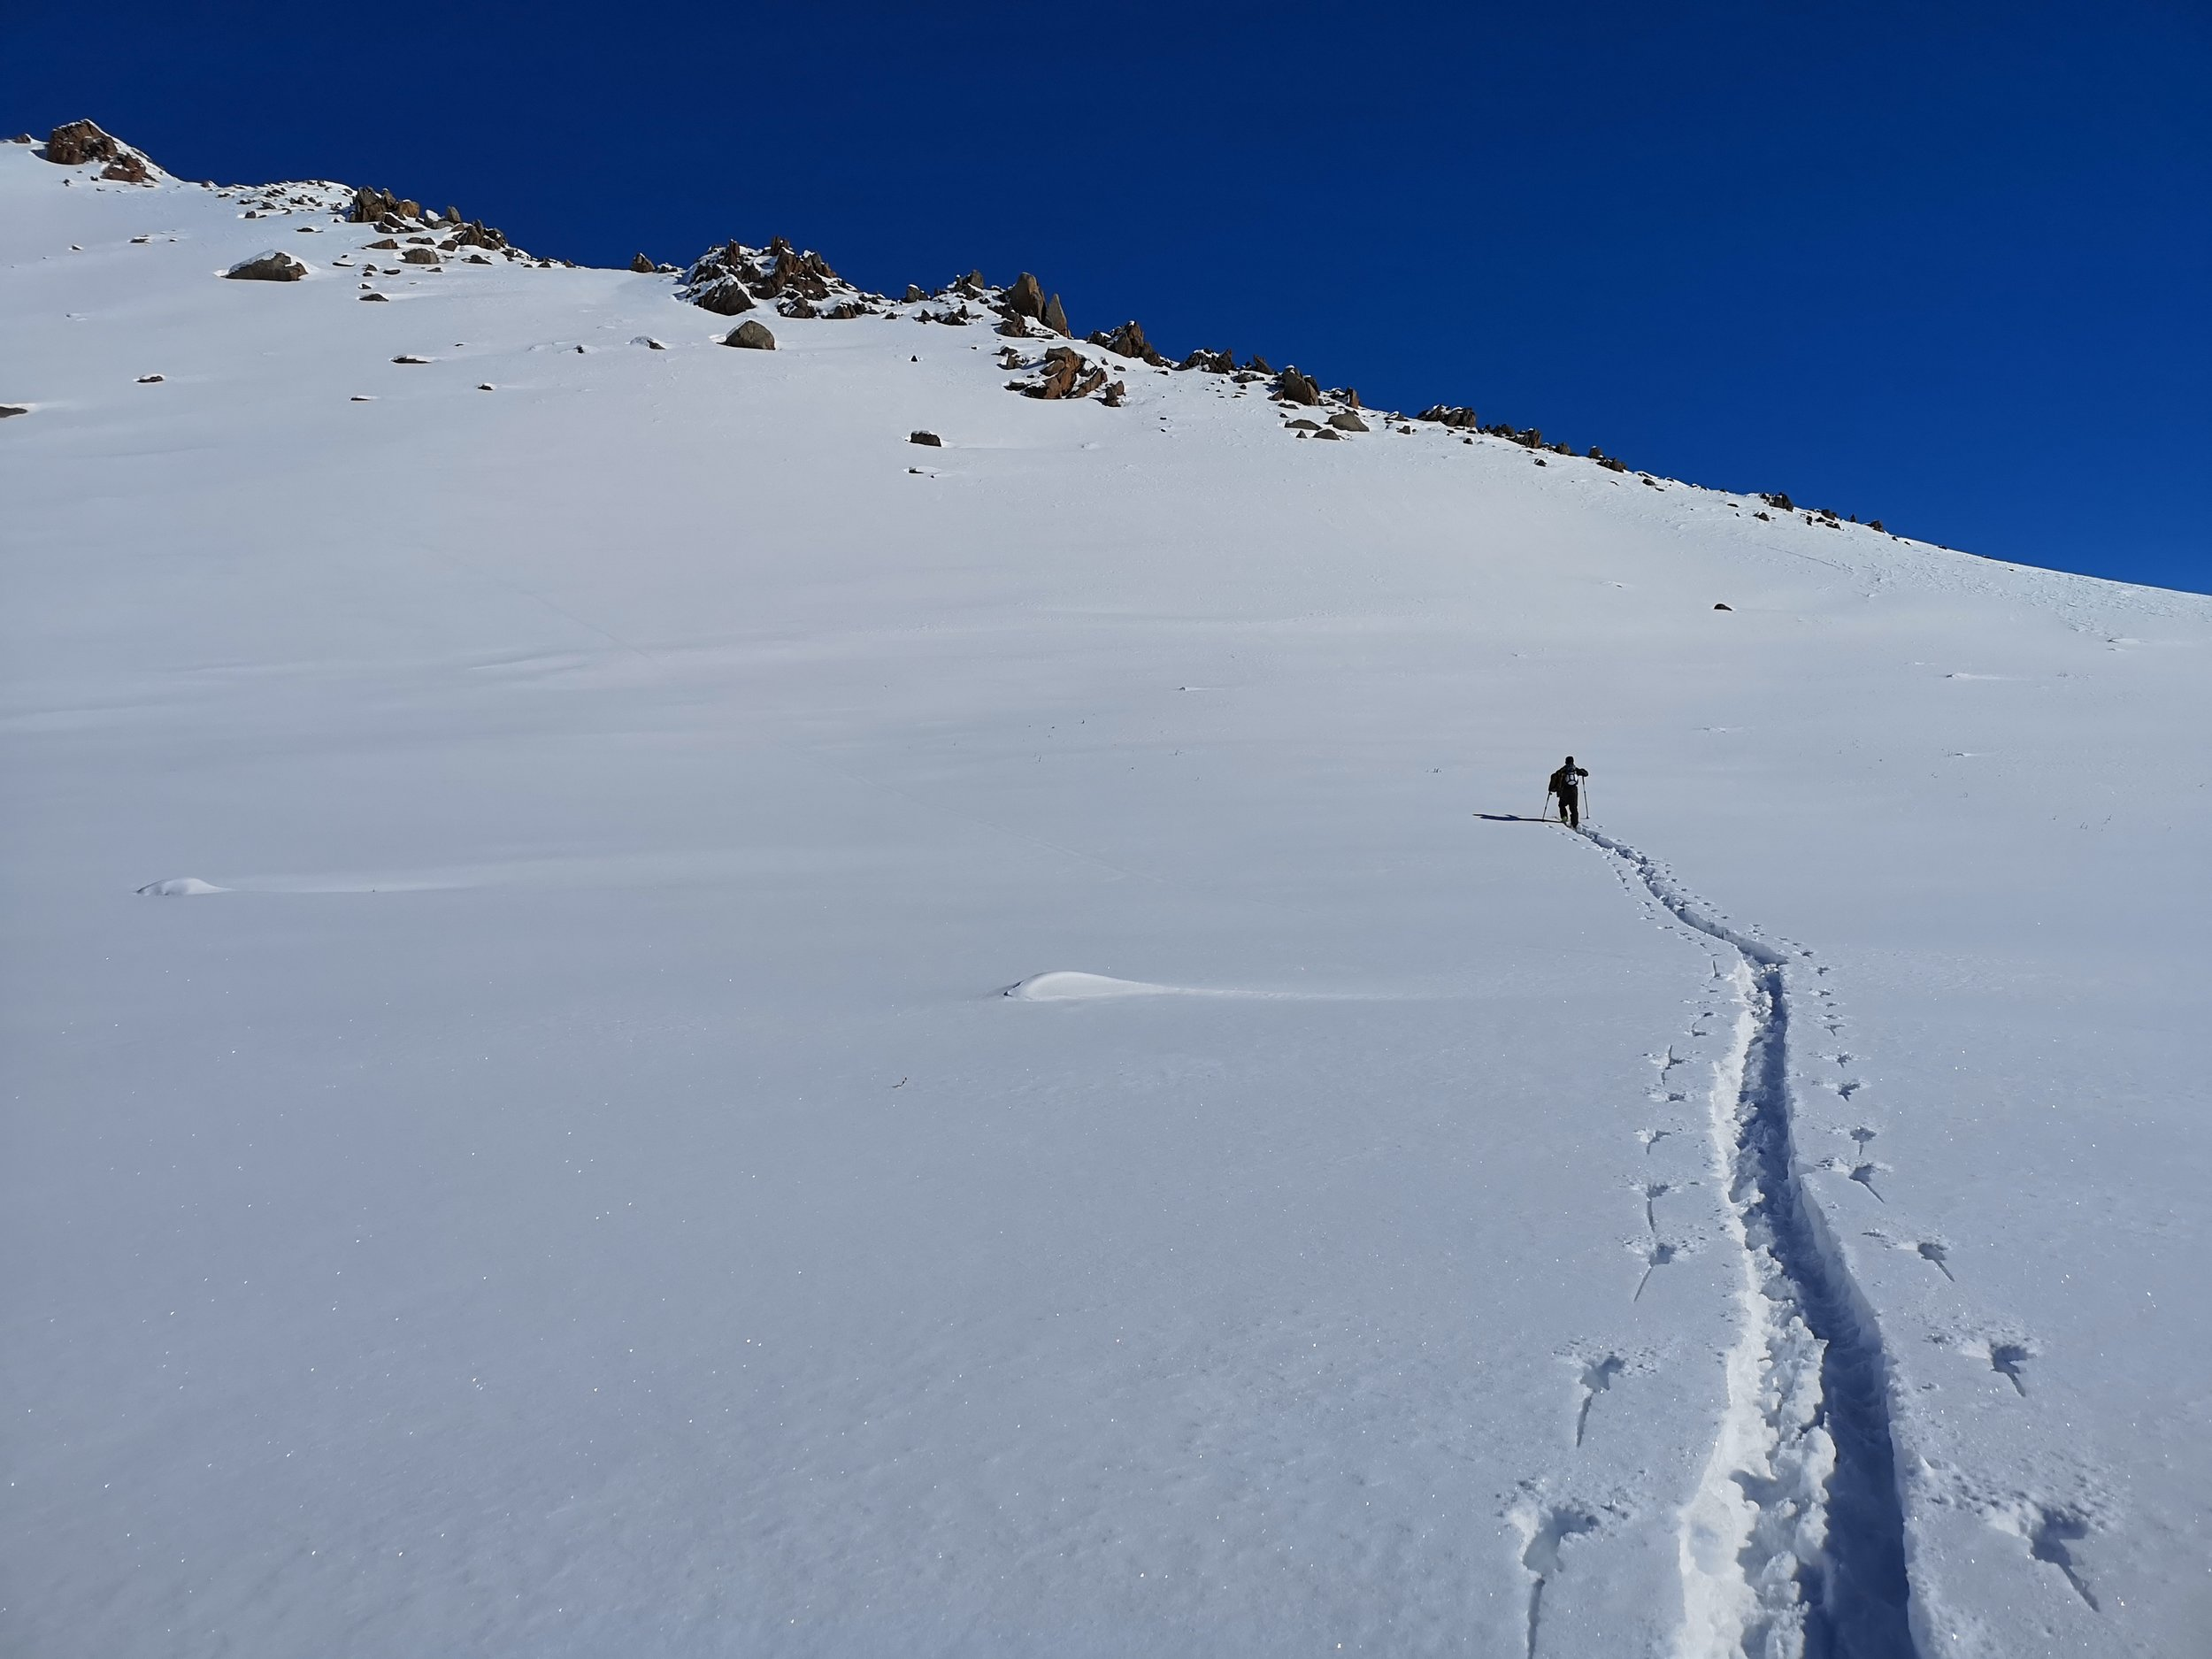 Ski touring is certainly the best way to get away from it all